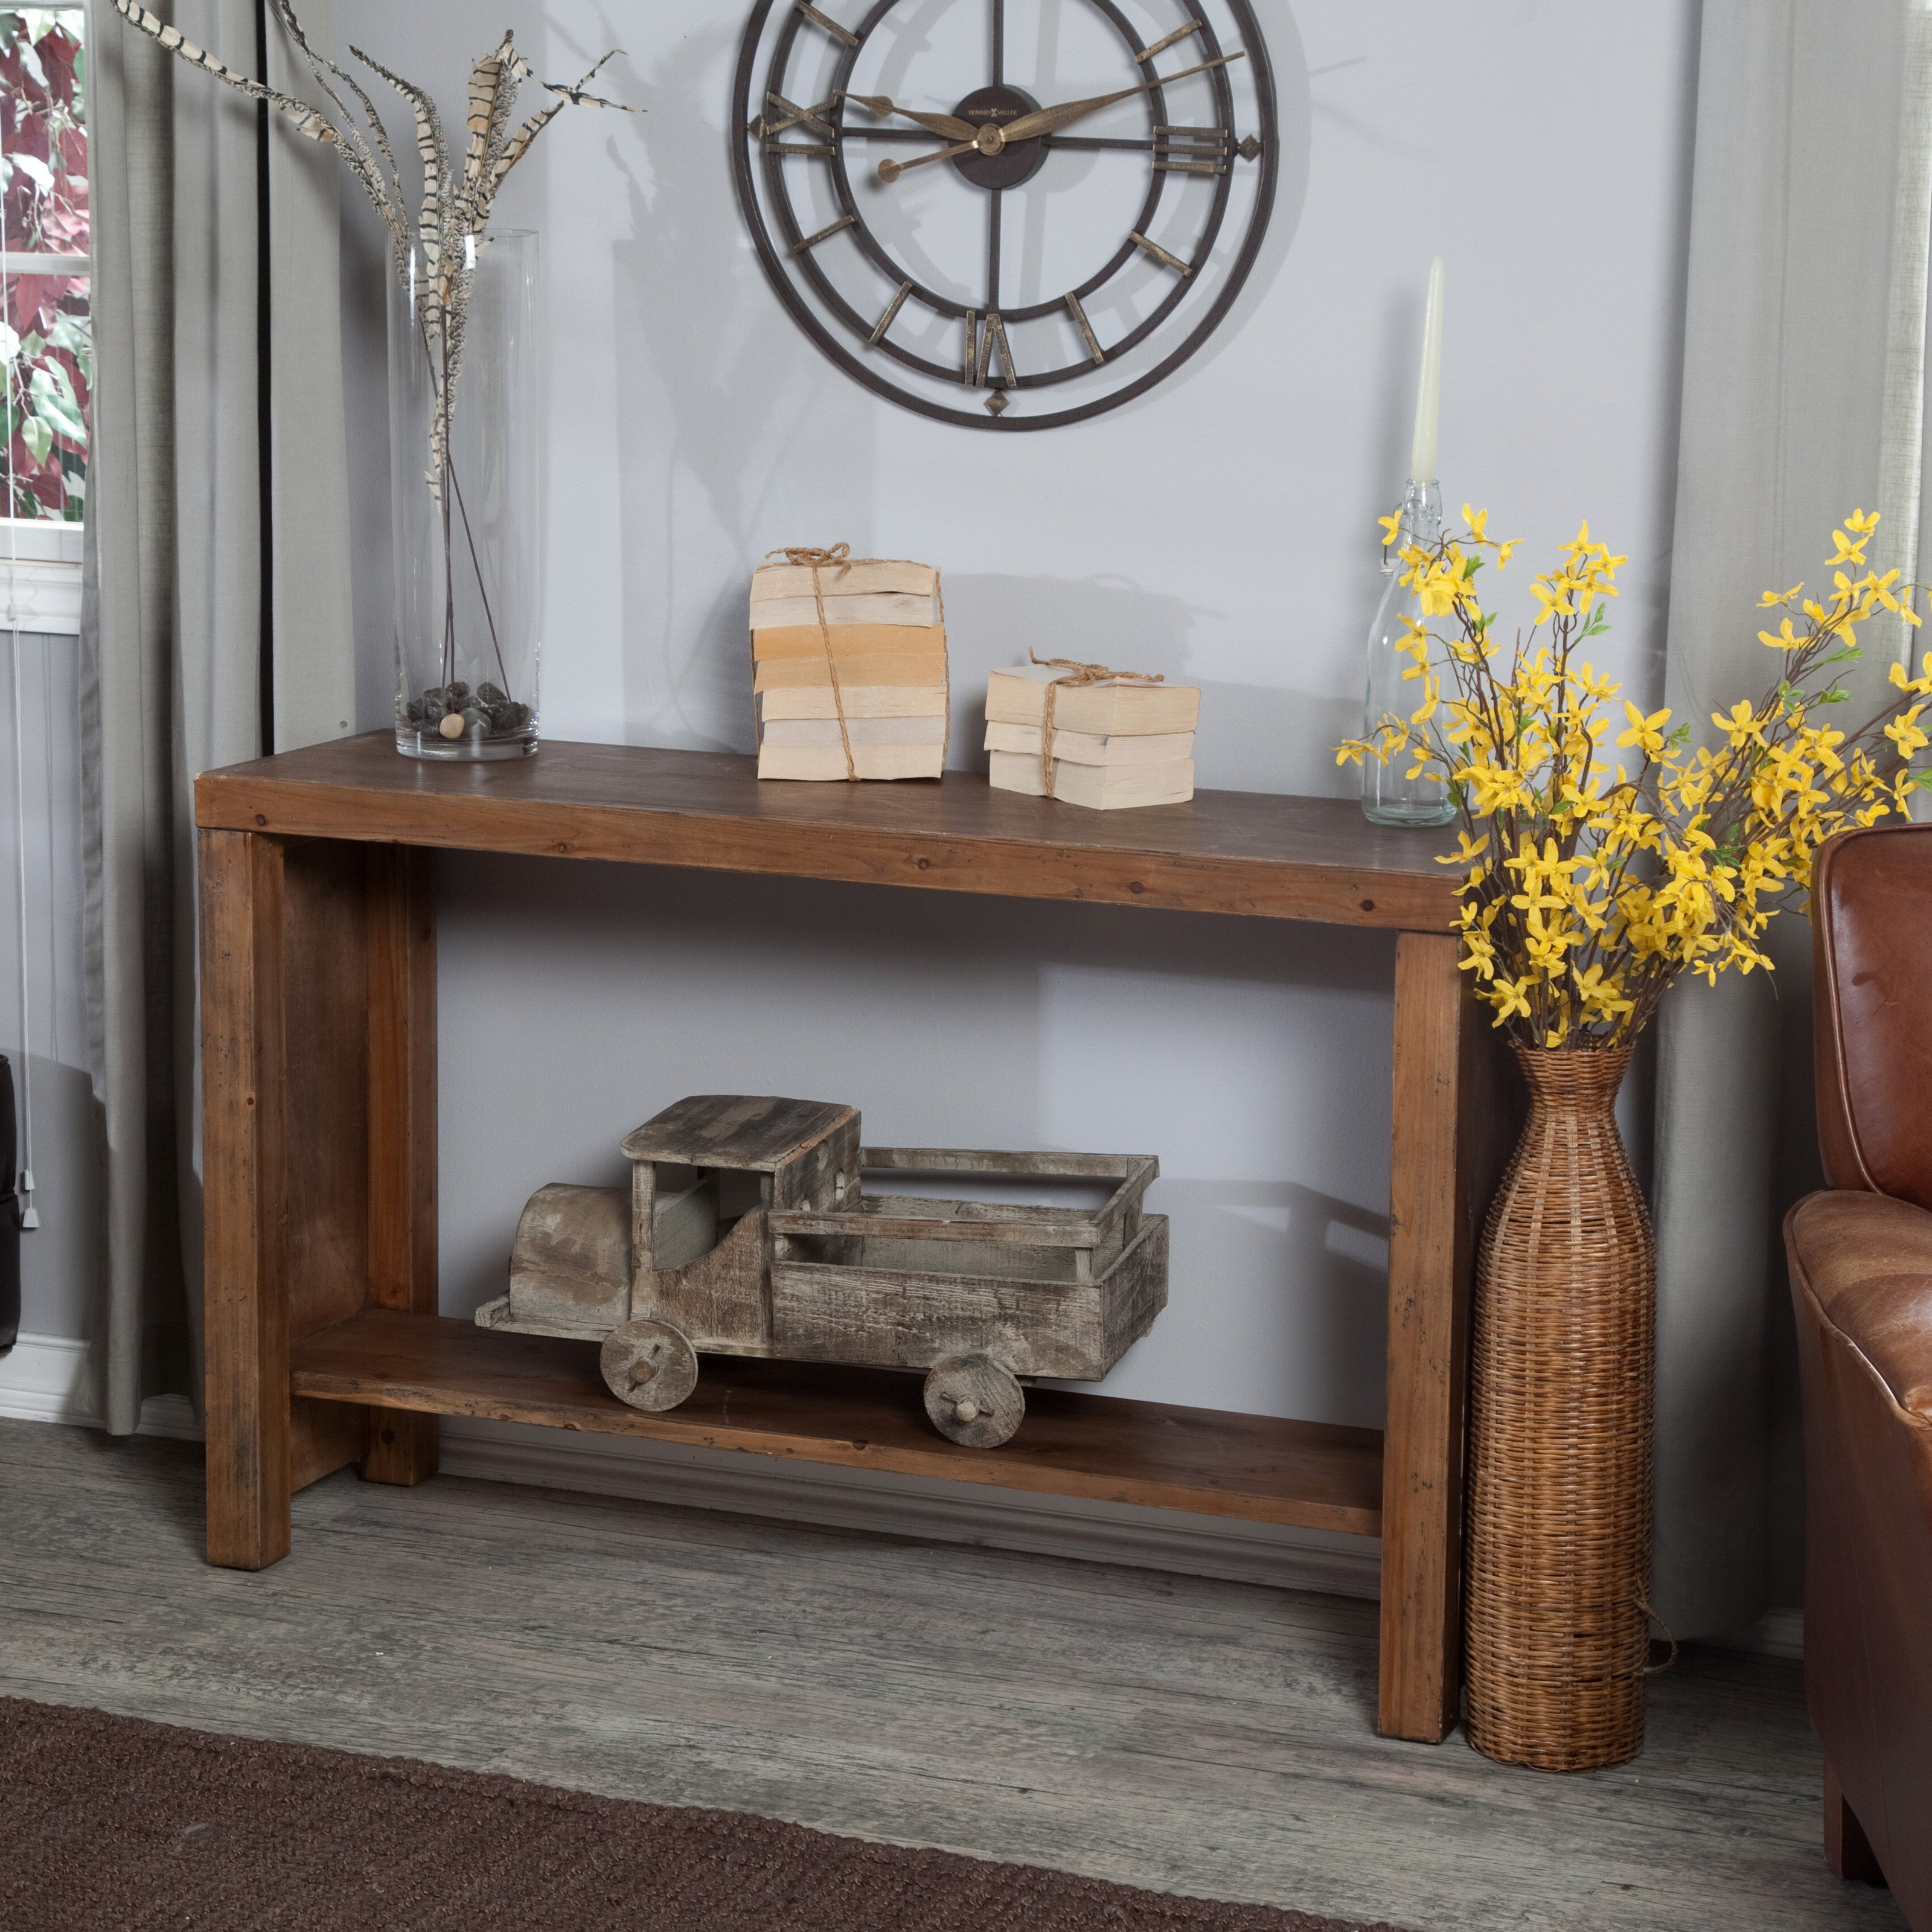 belham living brinfield rustic console table antique oak accent sofa timber furniture battery operated bedroom lights tall skinny entryway ikea drawers small glass garden corner